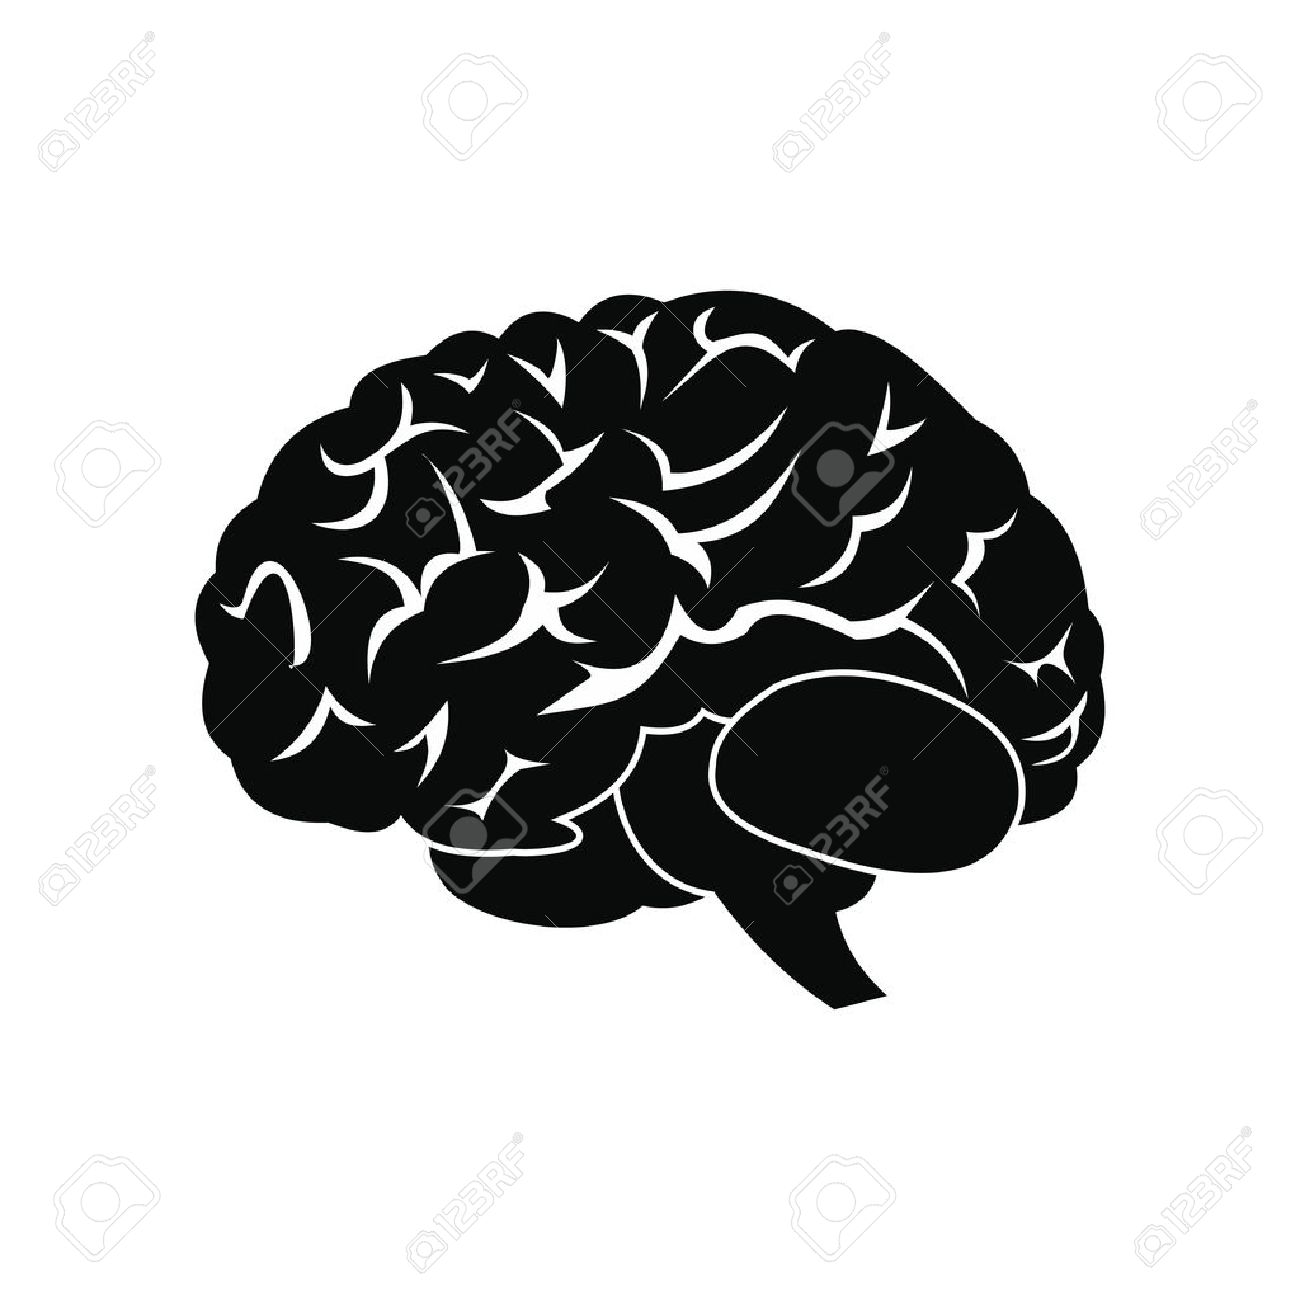 Human brain black simple icon isolated on white background - 51642835